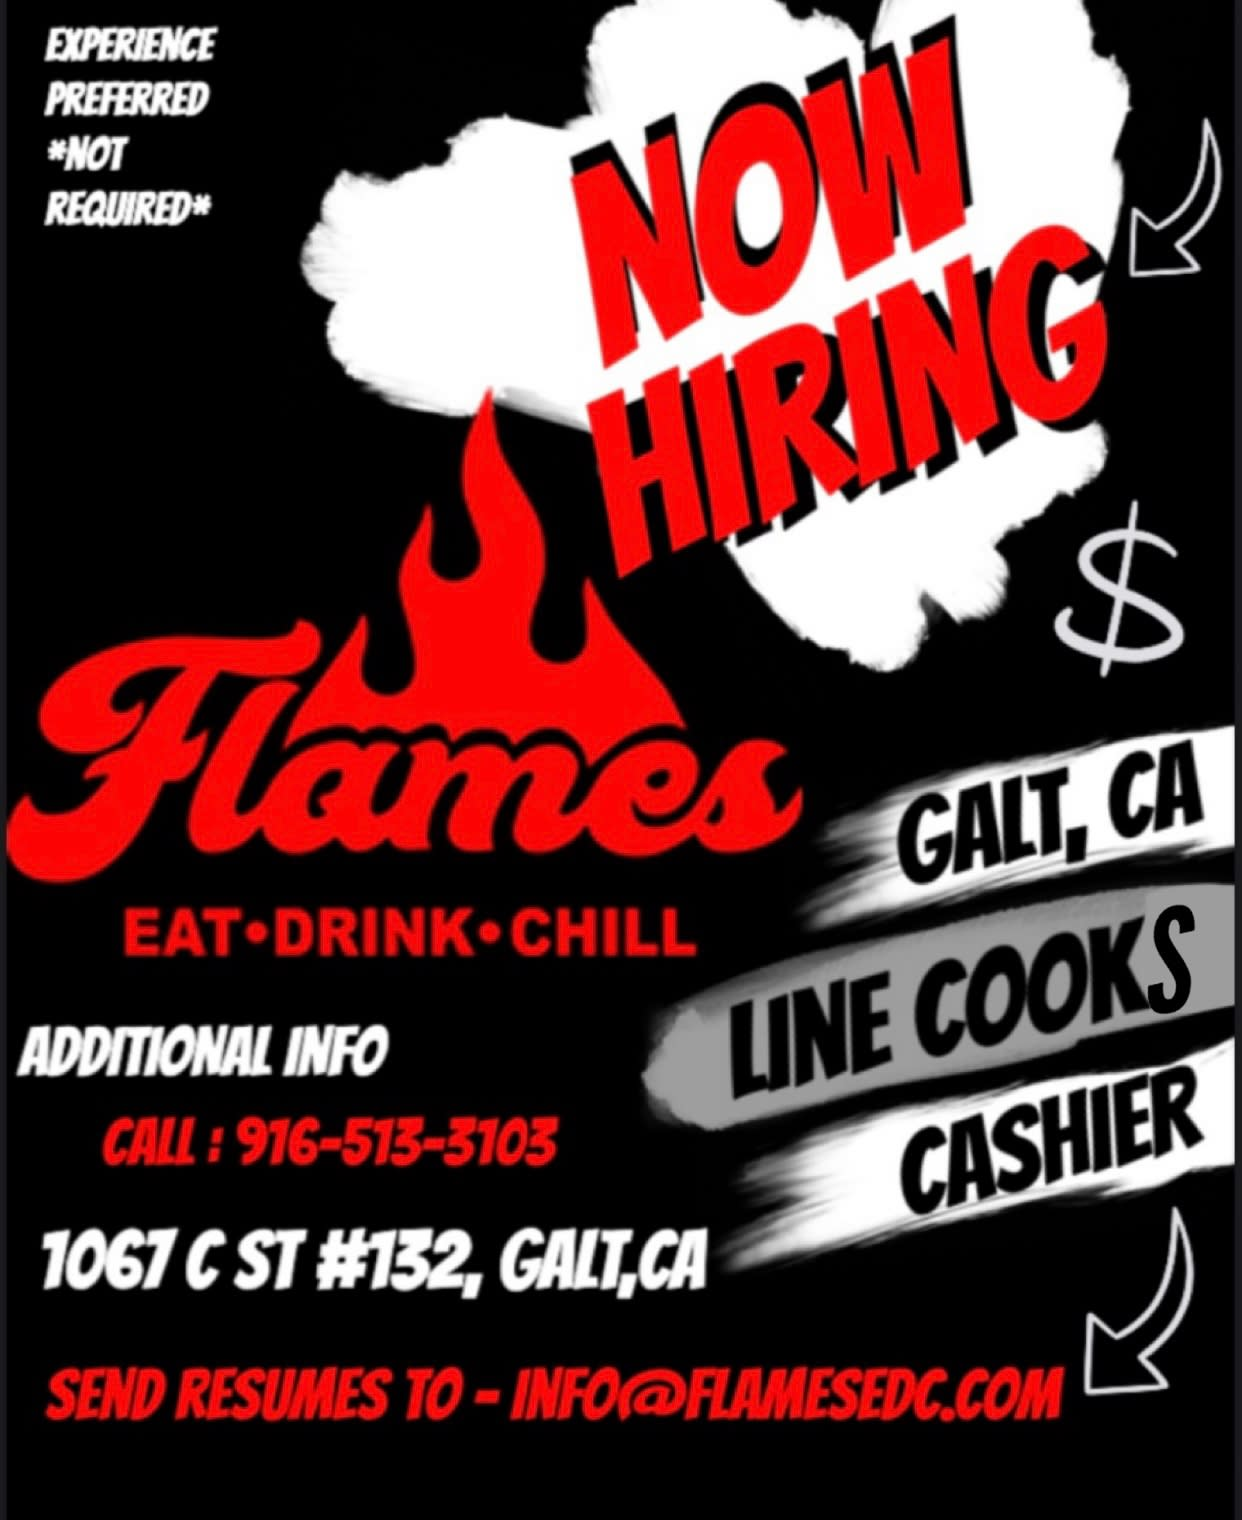 """Job flyer for Flames in Galt, """"Now Hiring Line Cooks & Cashiers"""" Experience preferred but not required."""